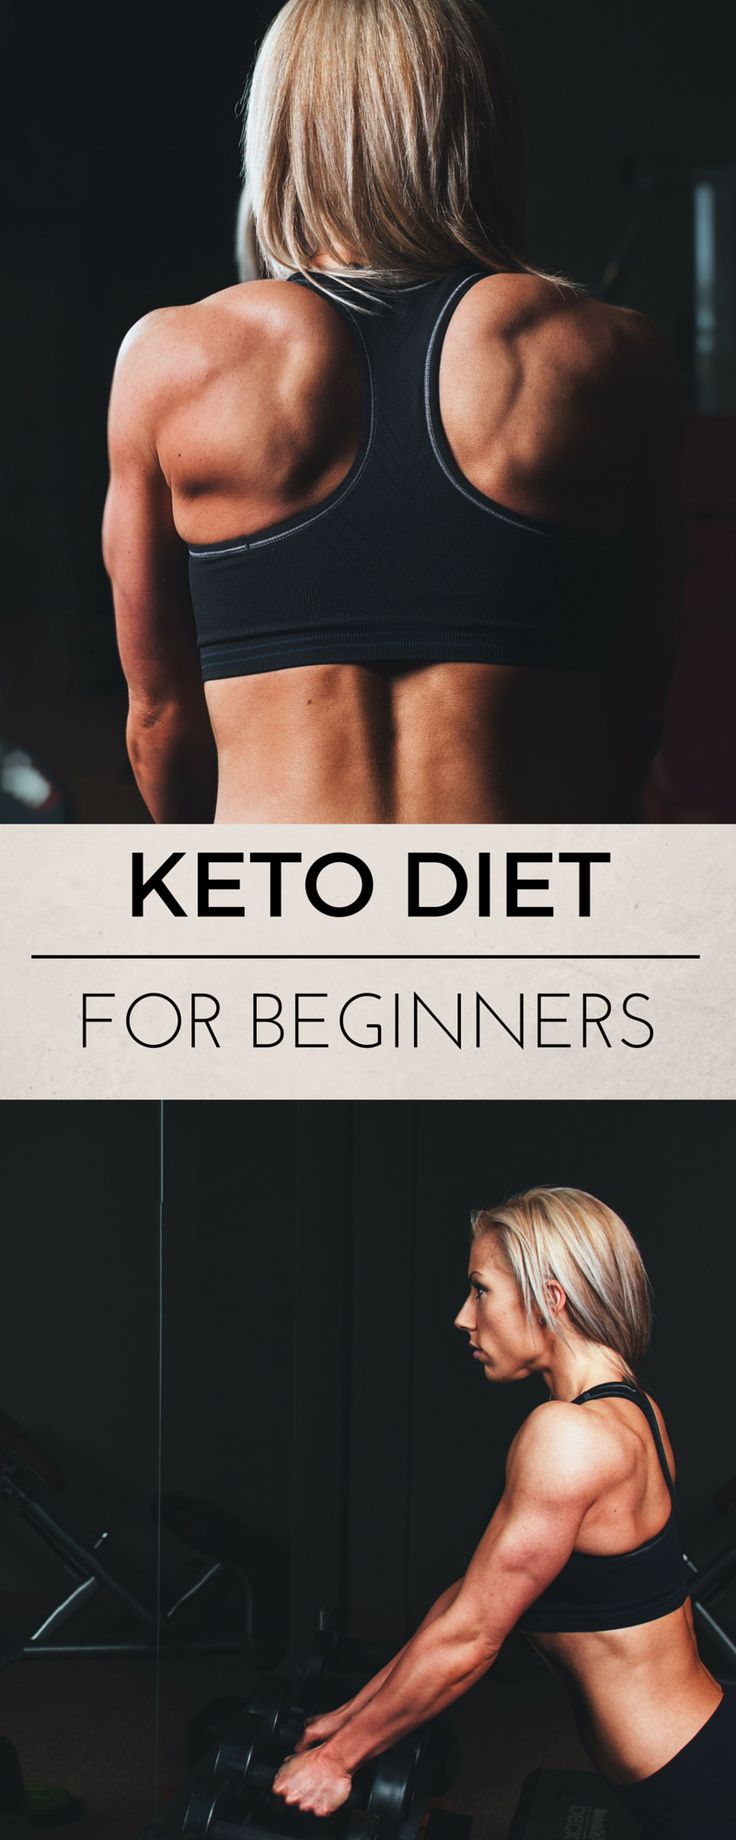 The Keto Diet - A Beginners Guide